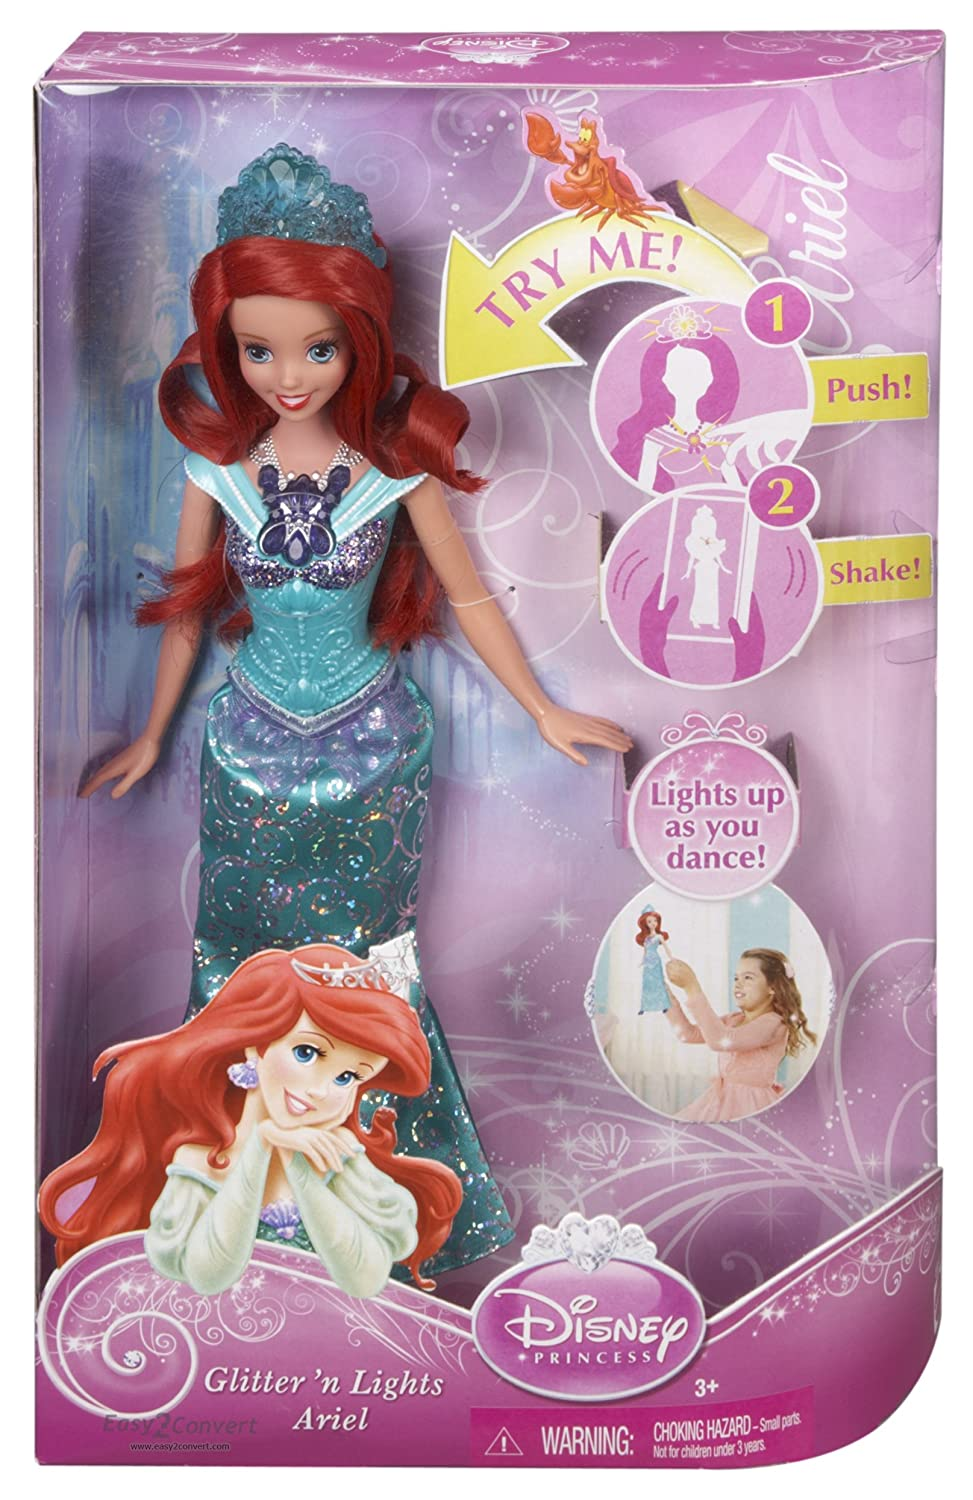 Disney Princess Glittering Lights Ariel Doll is only $6.07 at Amazon (reg $21.99)